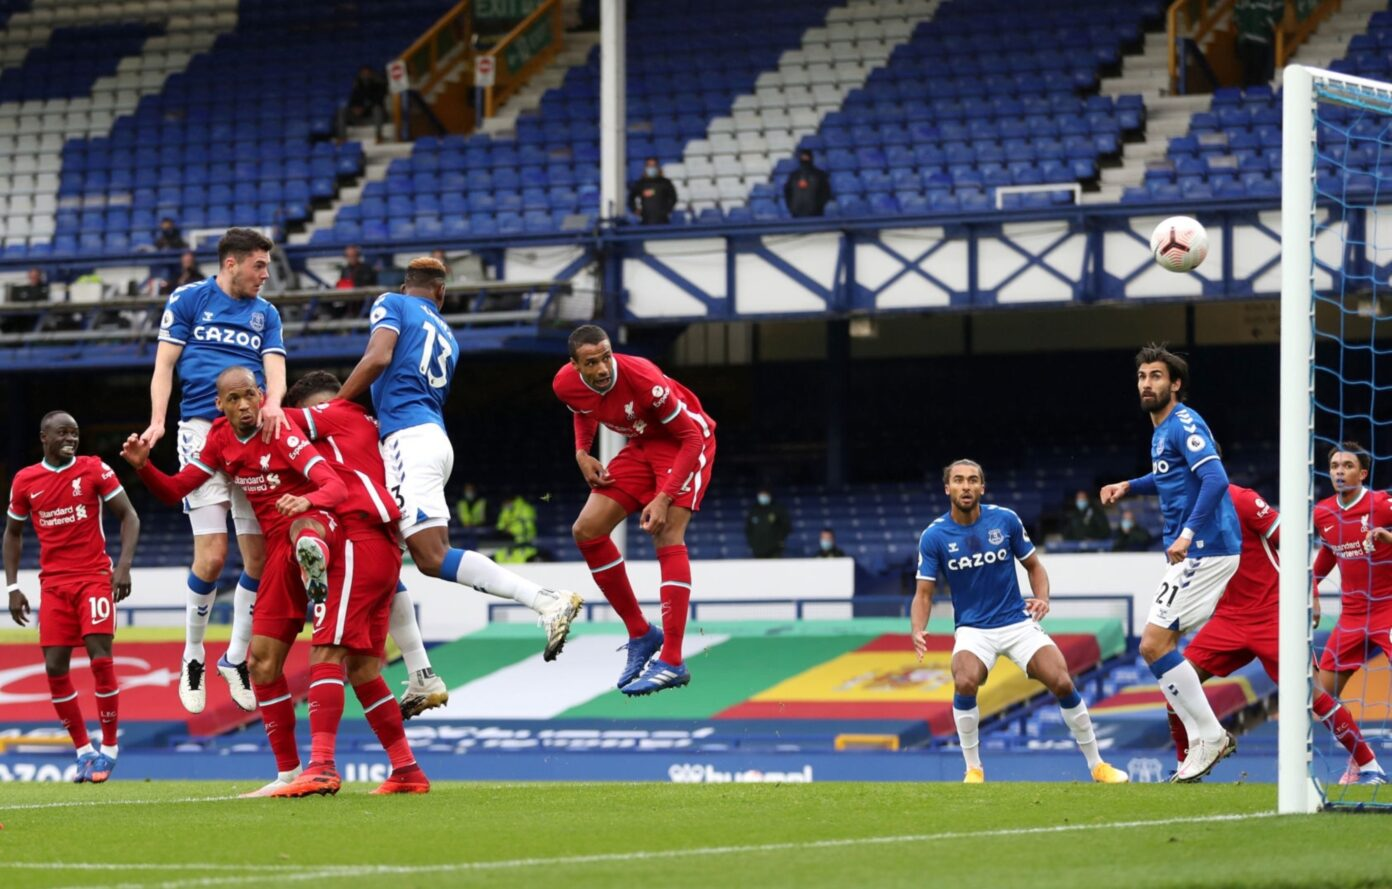 Everton 2-2 Liverpool – As it happened & reaction